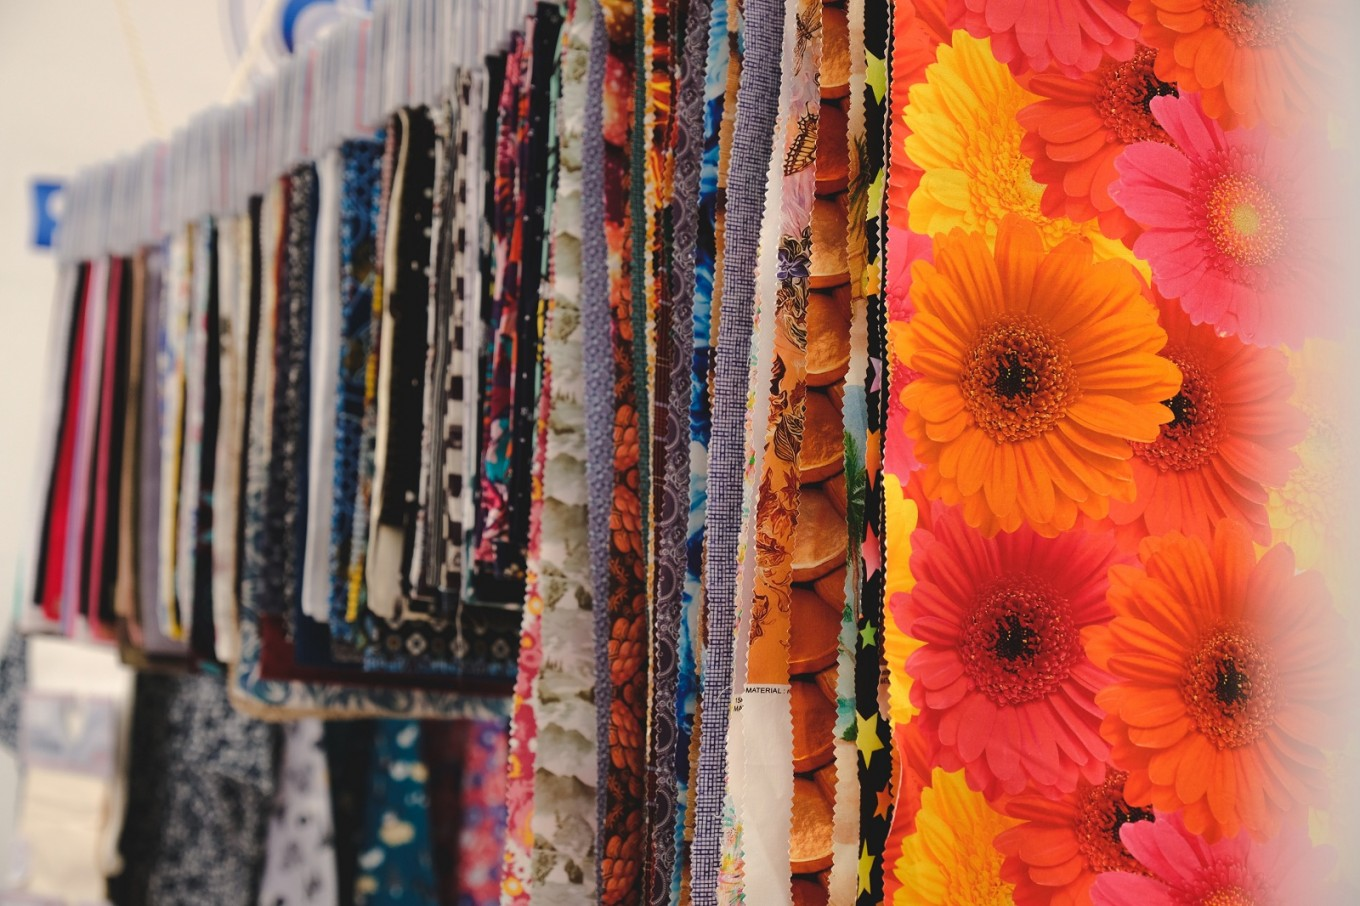 Viscose may give Indonesia's textile industry edge in sustainability